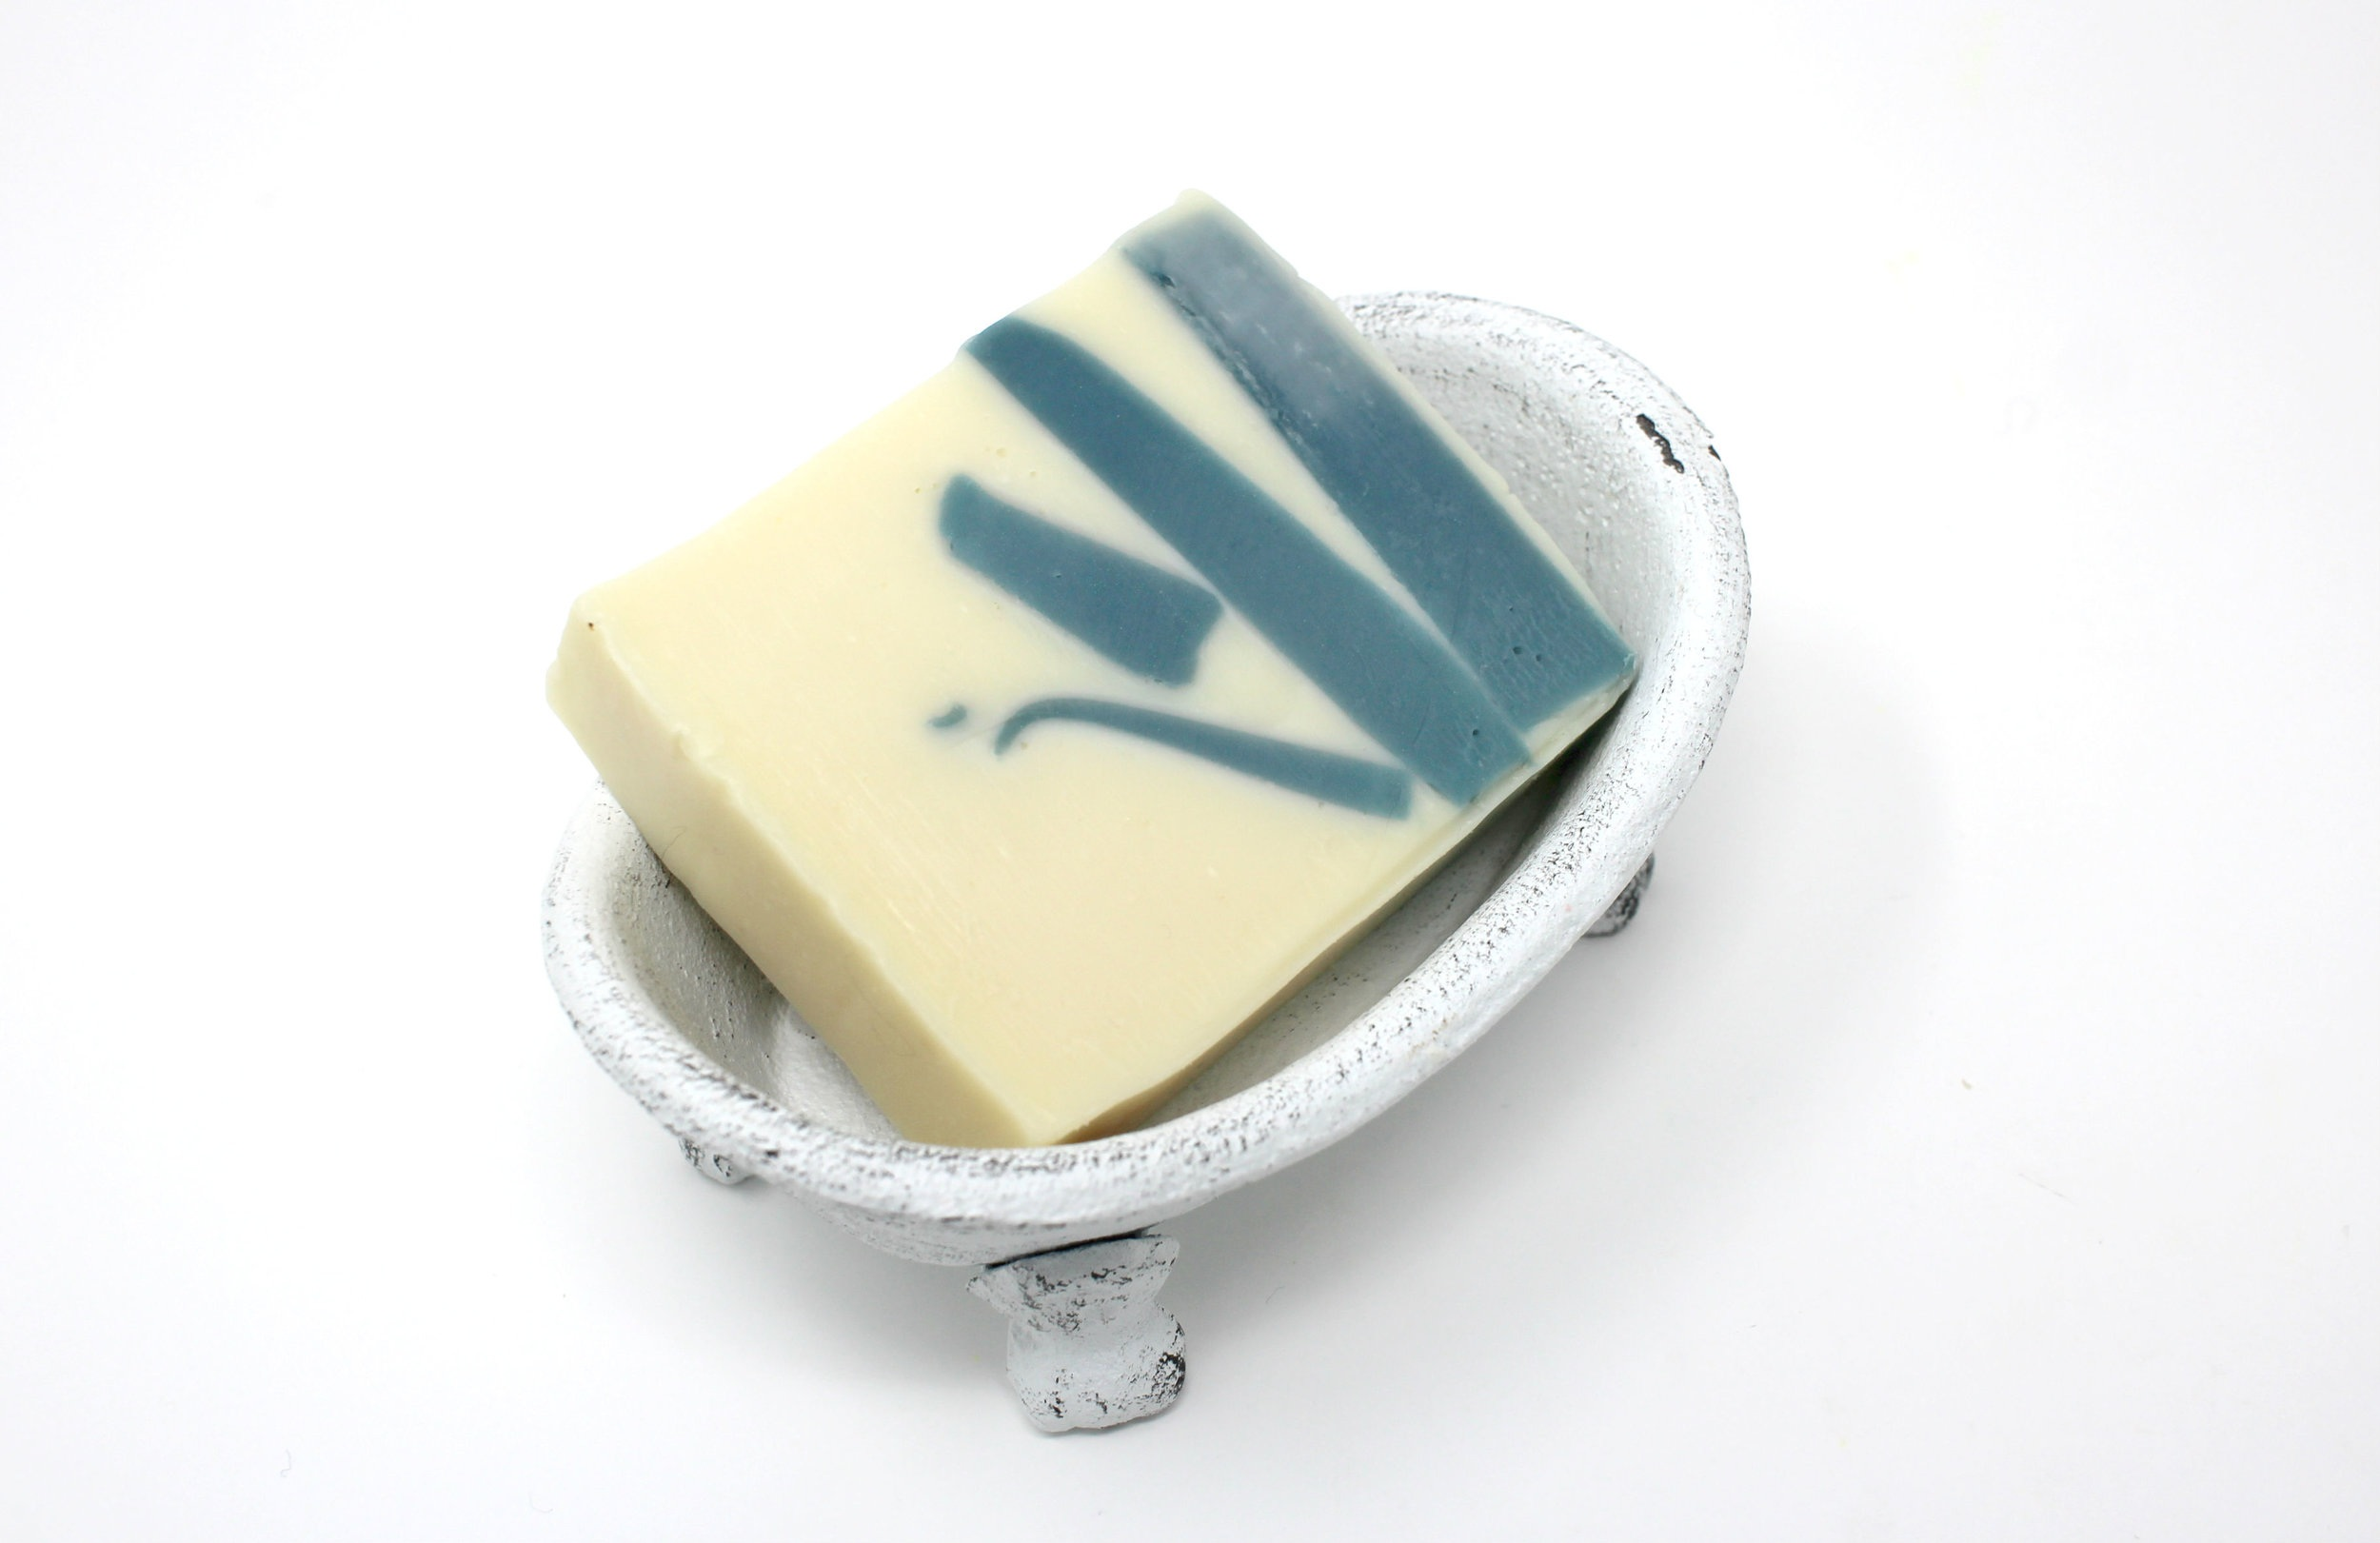 Single Bar Of Cold Process Soap Over 20 Scents To Choose From T J Handcrafted Soap